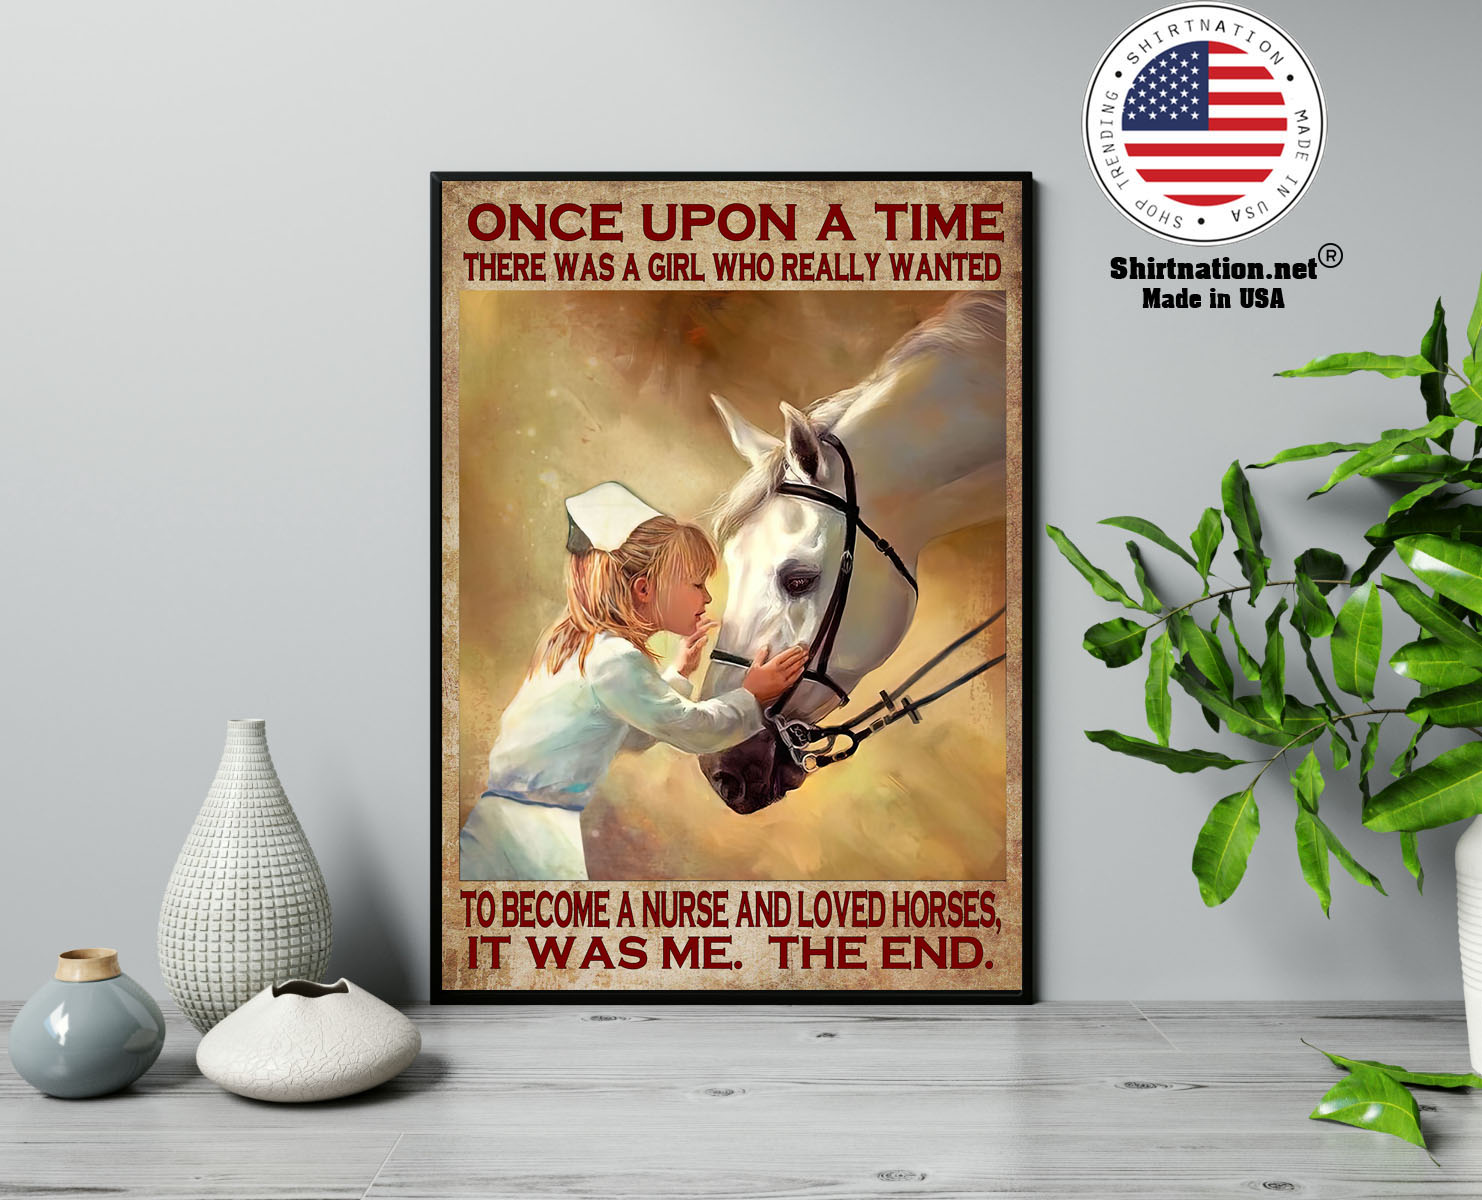 Once upon a time there was a girl who really wanted to become a nurse and loved horses poster 13